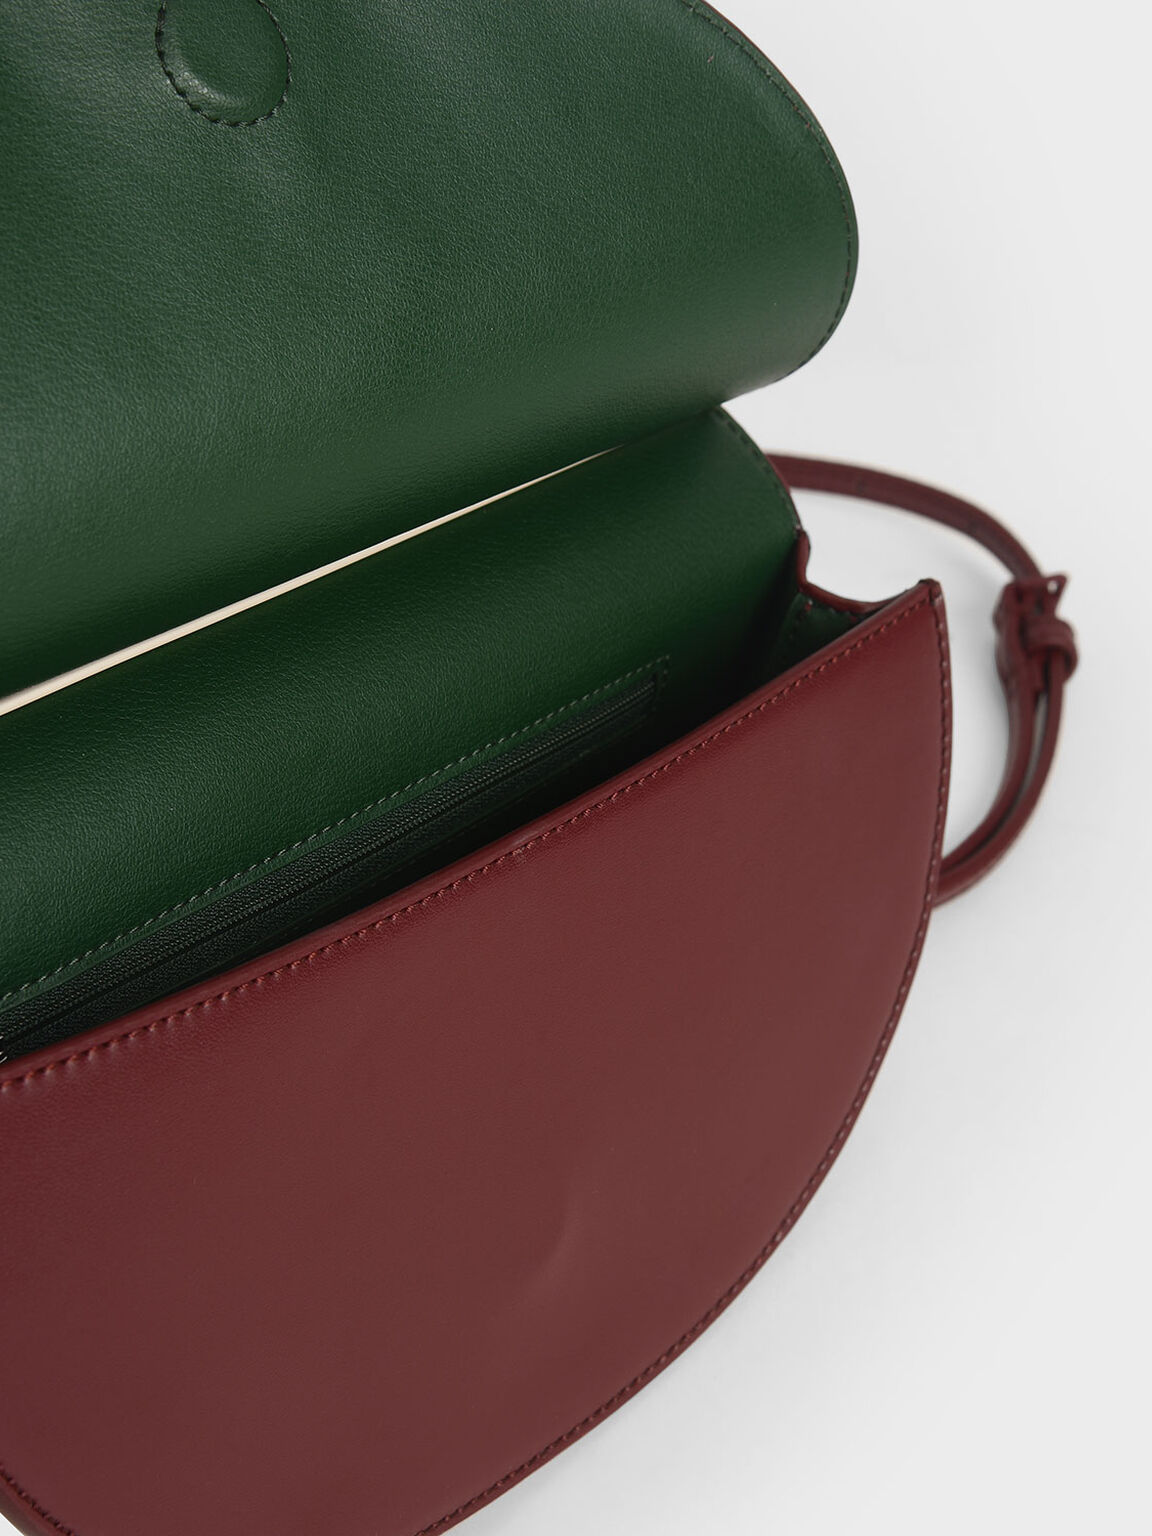 Two-Tone Half Moon Clutch, Maroon, hi-res